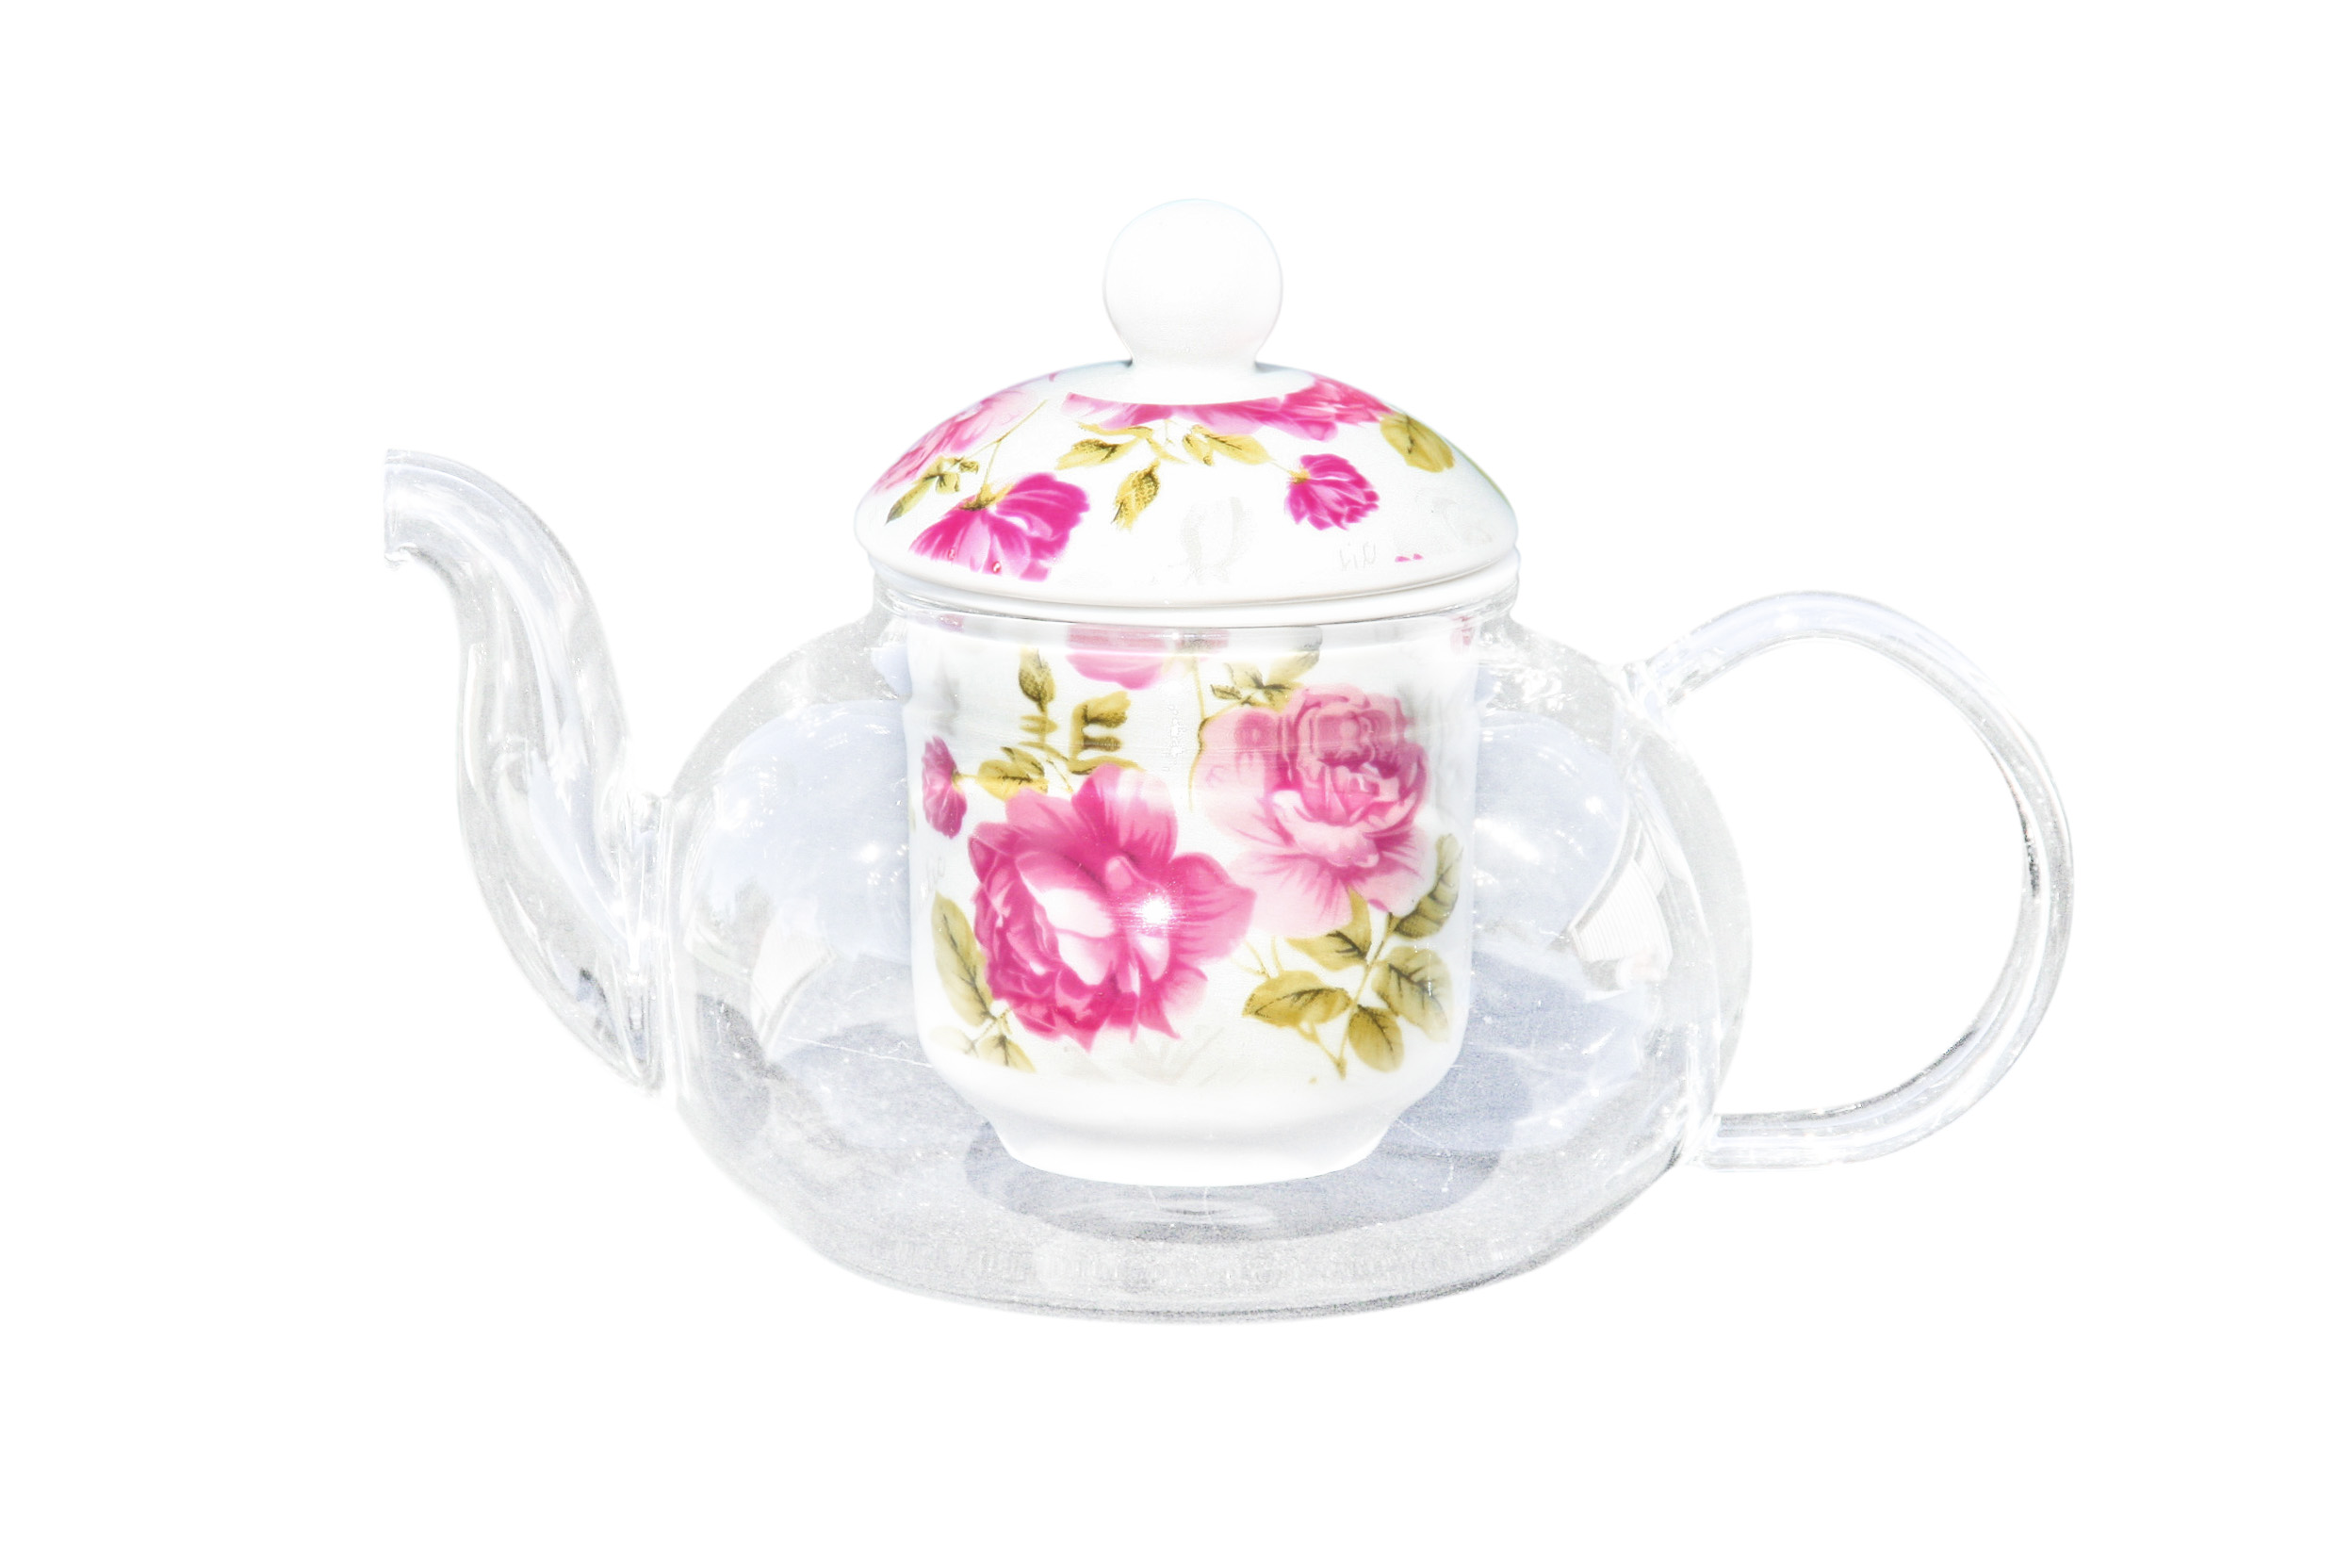 Glass/Porcelain Infused Teapot Candy Rose